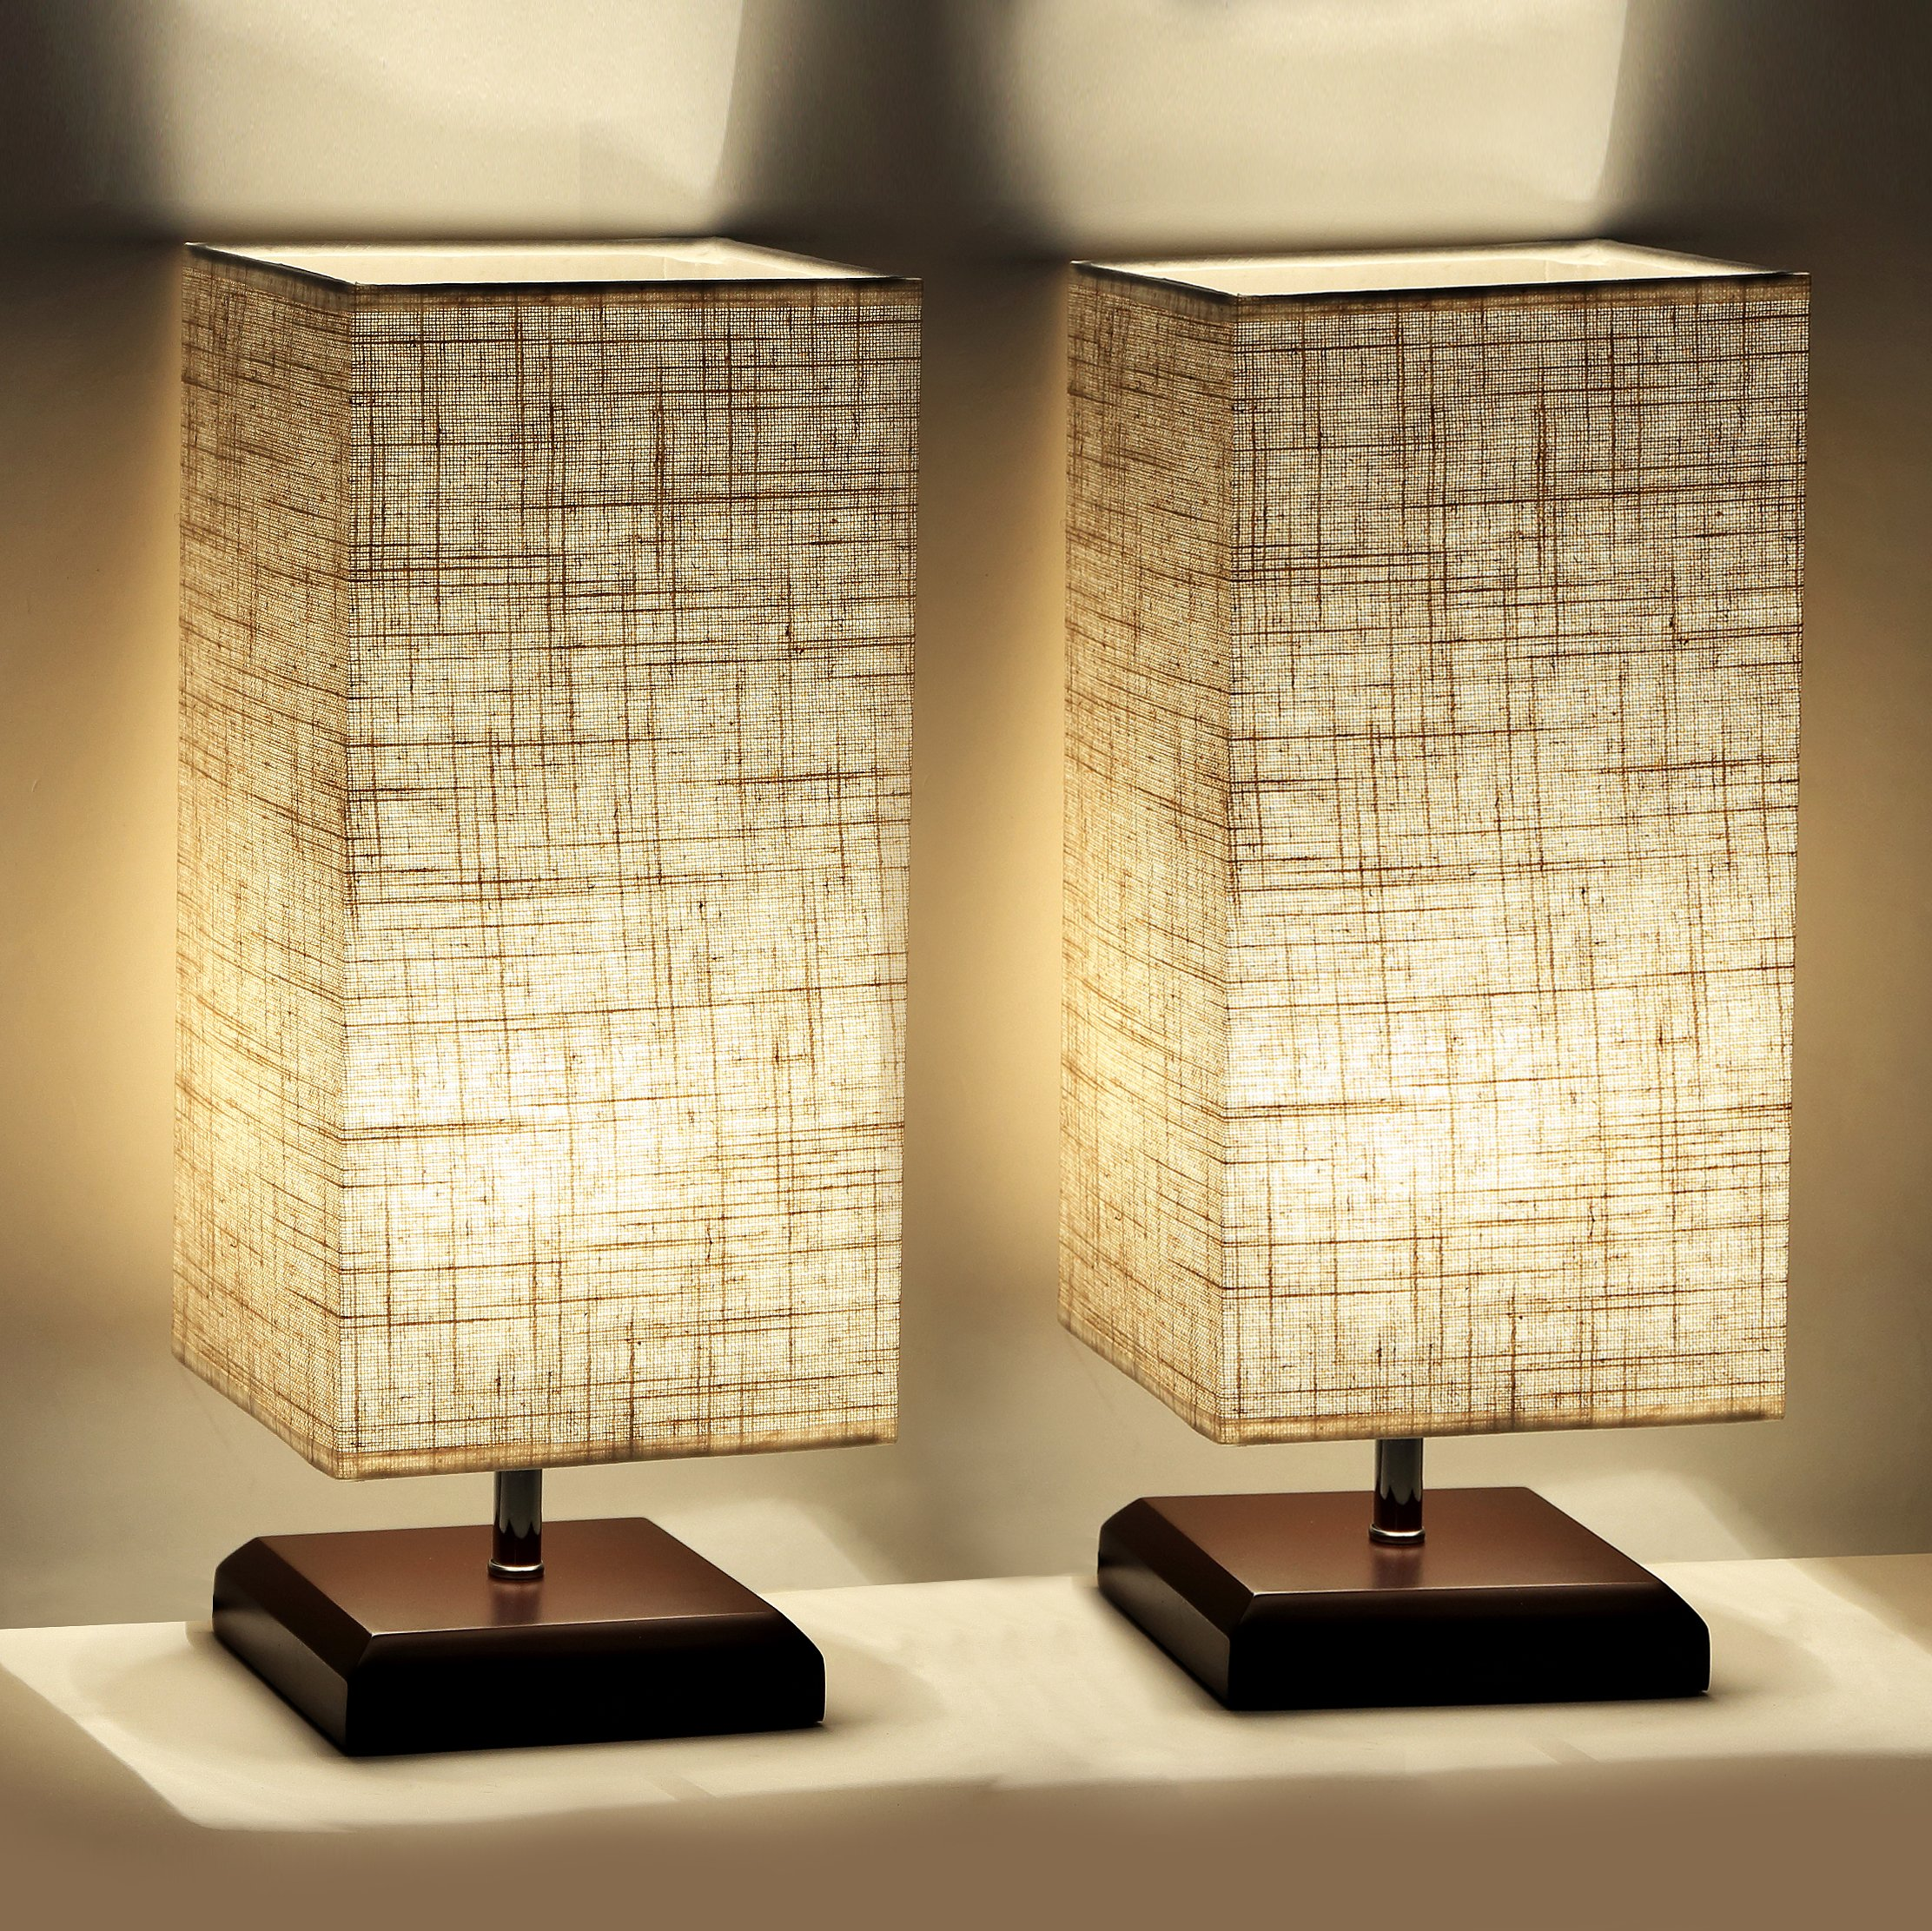 Set Of 2 Table Lamps For Bedroom Living Room Bedside Lighting Modern Romantic Ebay